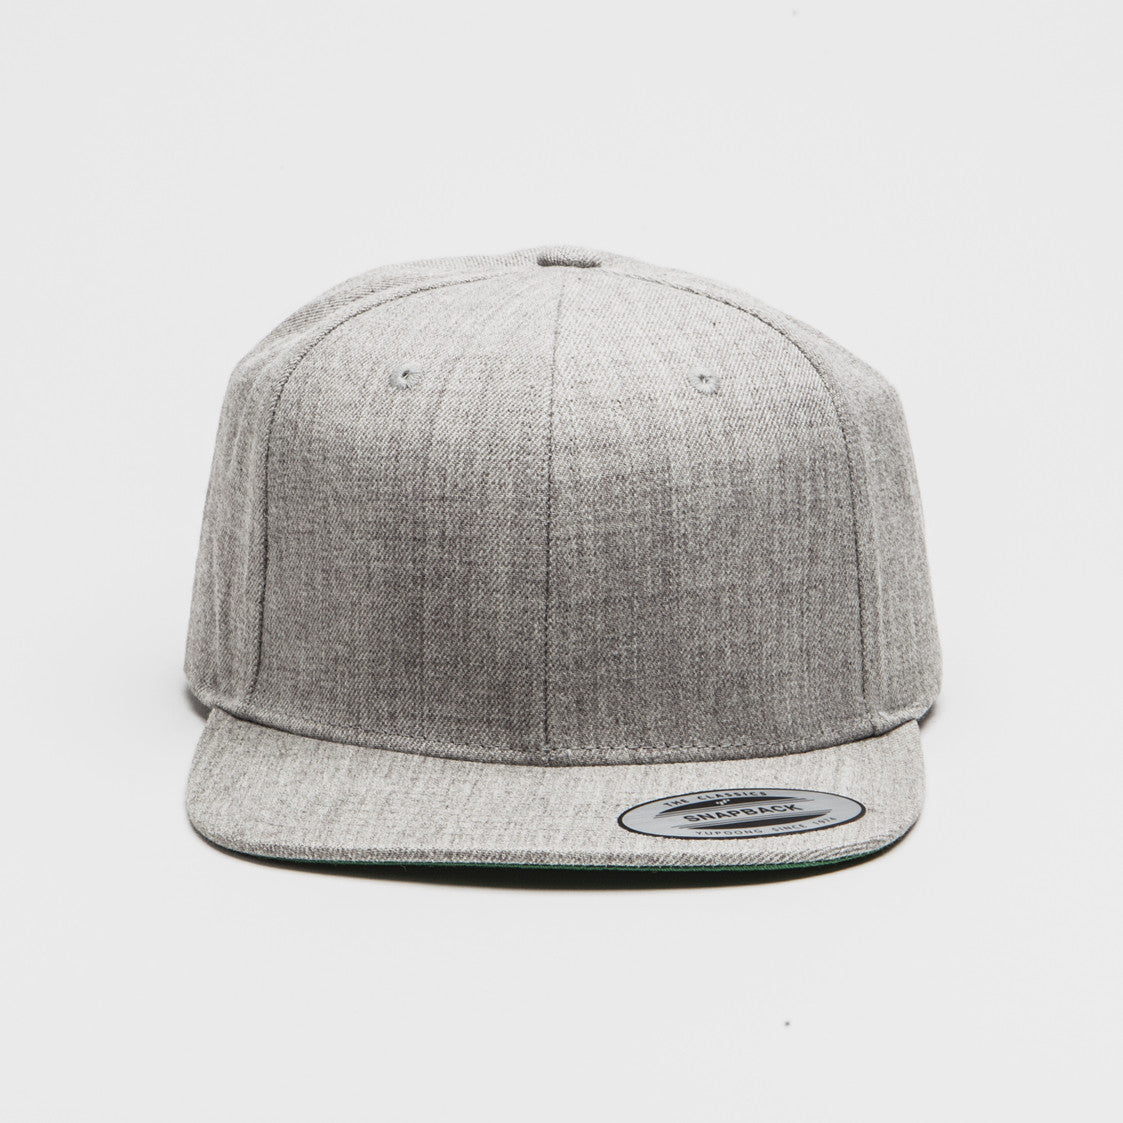 6e54dfd6f78c3 Yupoong The Classic Snapback Heather Grey